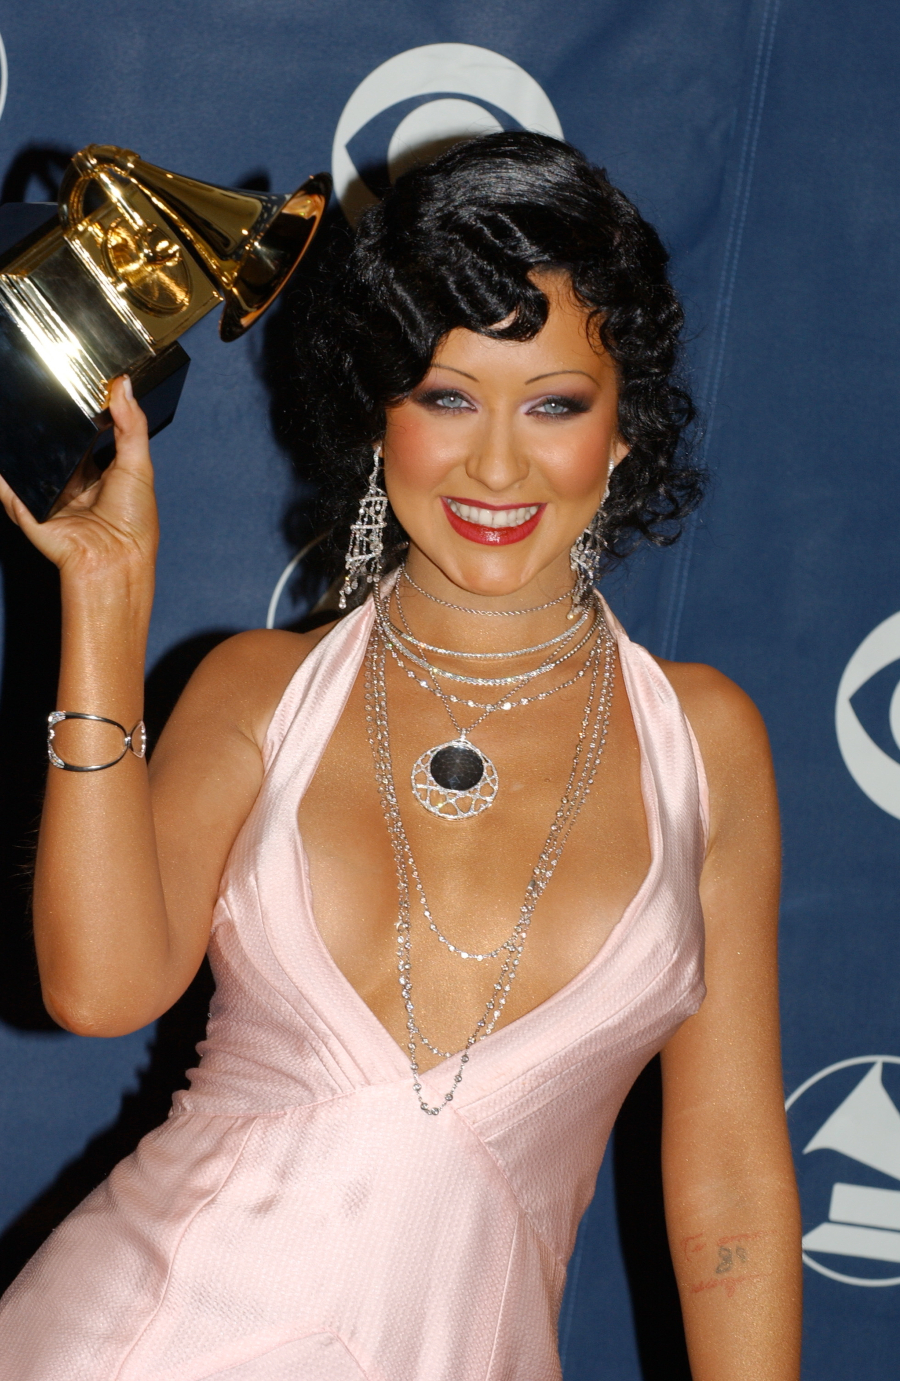 Christina Aguilera with her award for Best Female Pop Vocal Performance in the press room at the 46th annual Grammy Awards. (Photo by Frank Trapper/Corbis via Getty Images)